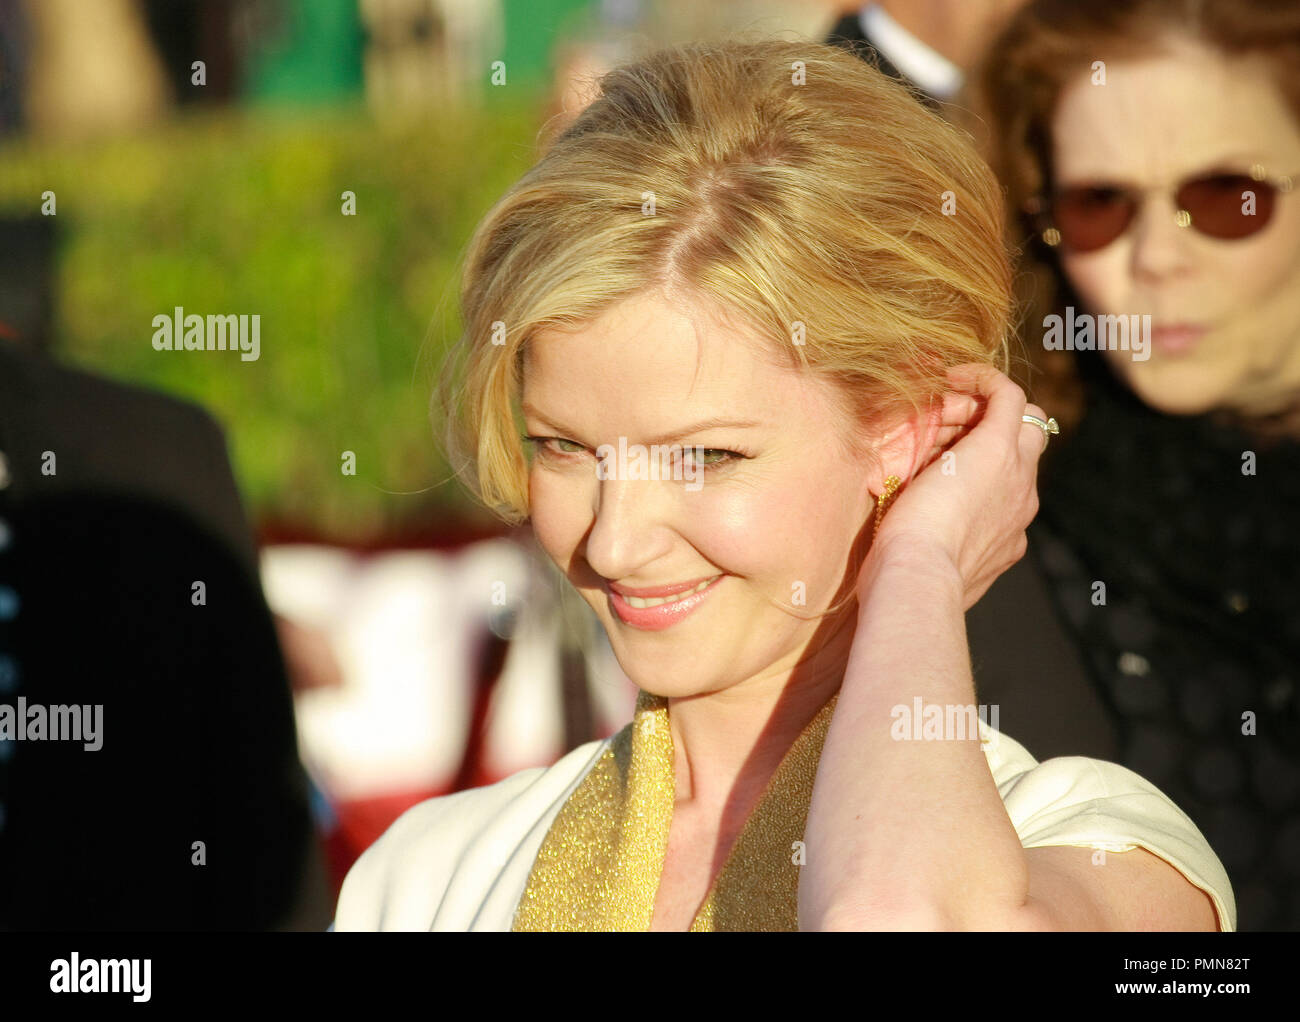 Gretchen Mol at the 18th Annual Screen Actors Guild Awards. Arrivals held at the Shrine Auditorium in Los Angeles, CA, January 29, 2012. Photo by Joe Martinez / PictureLux Stock Photo